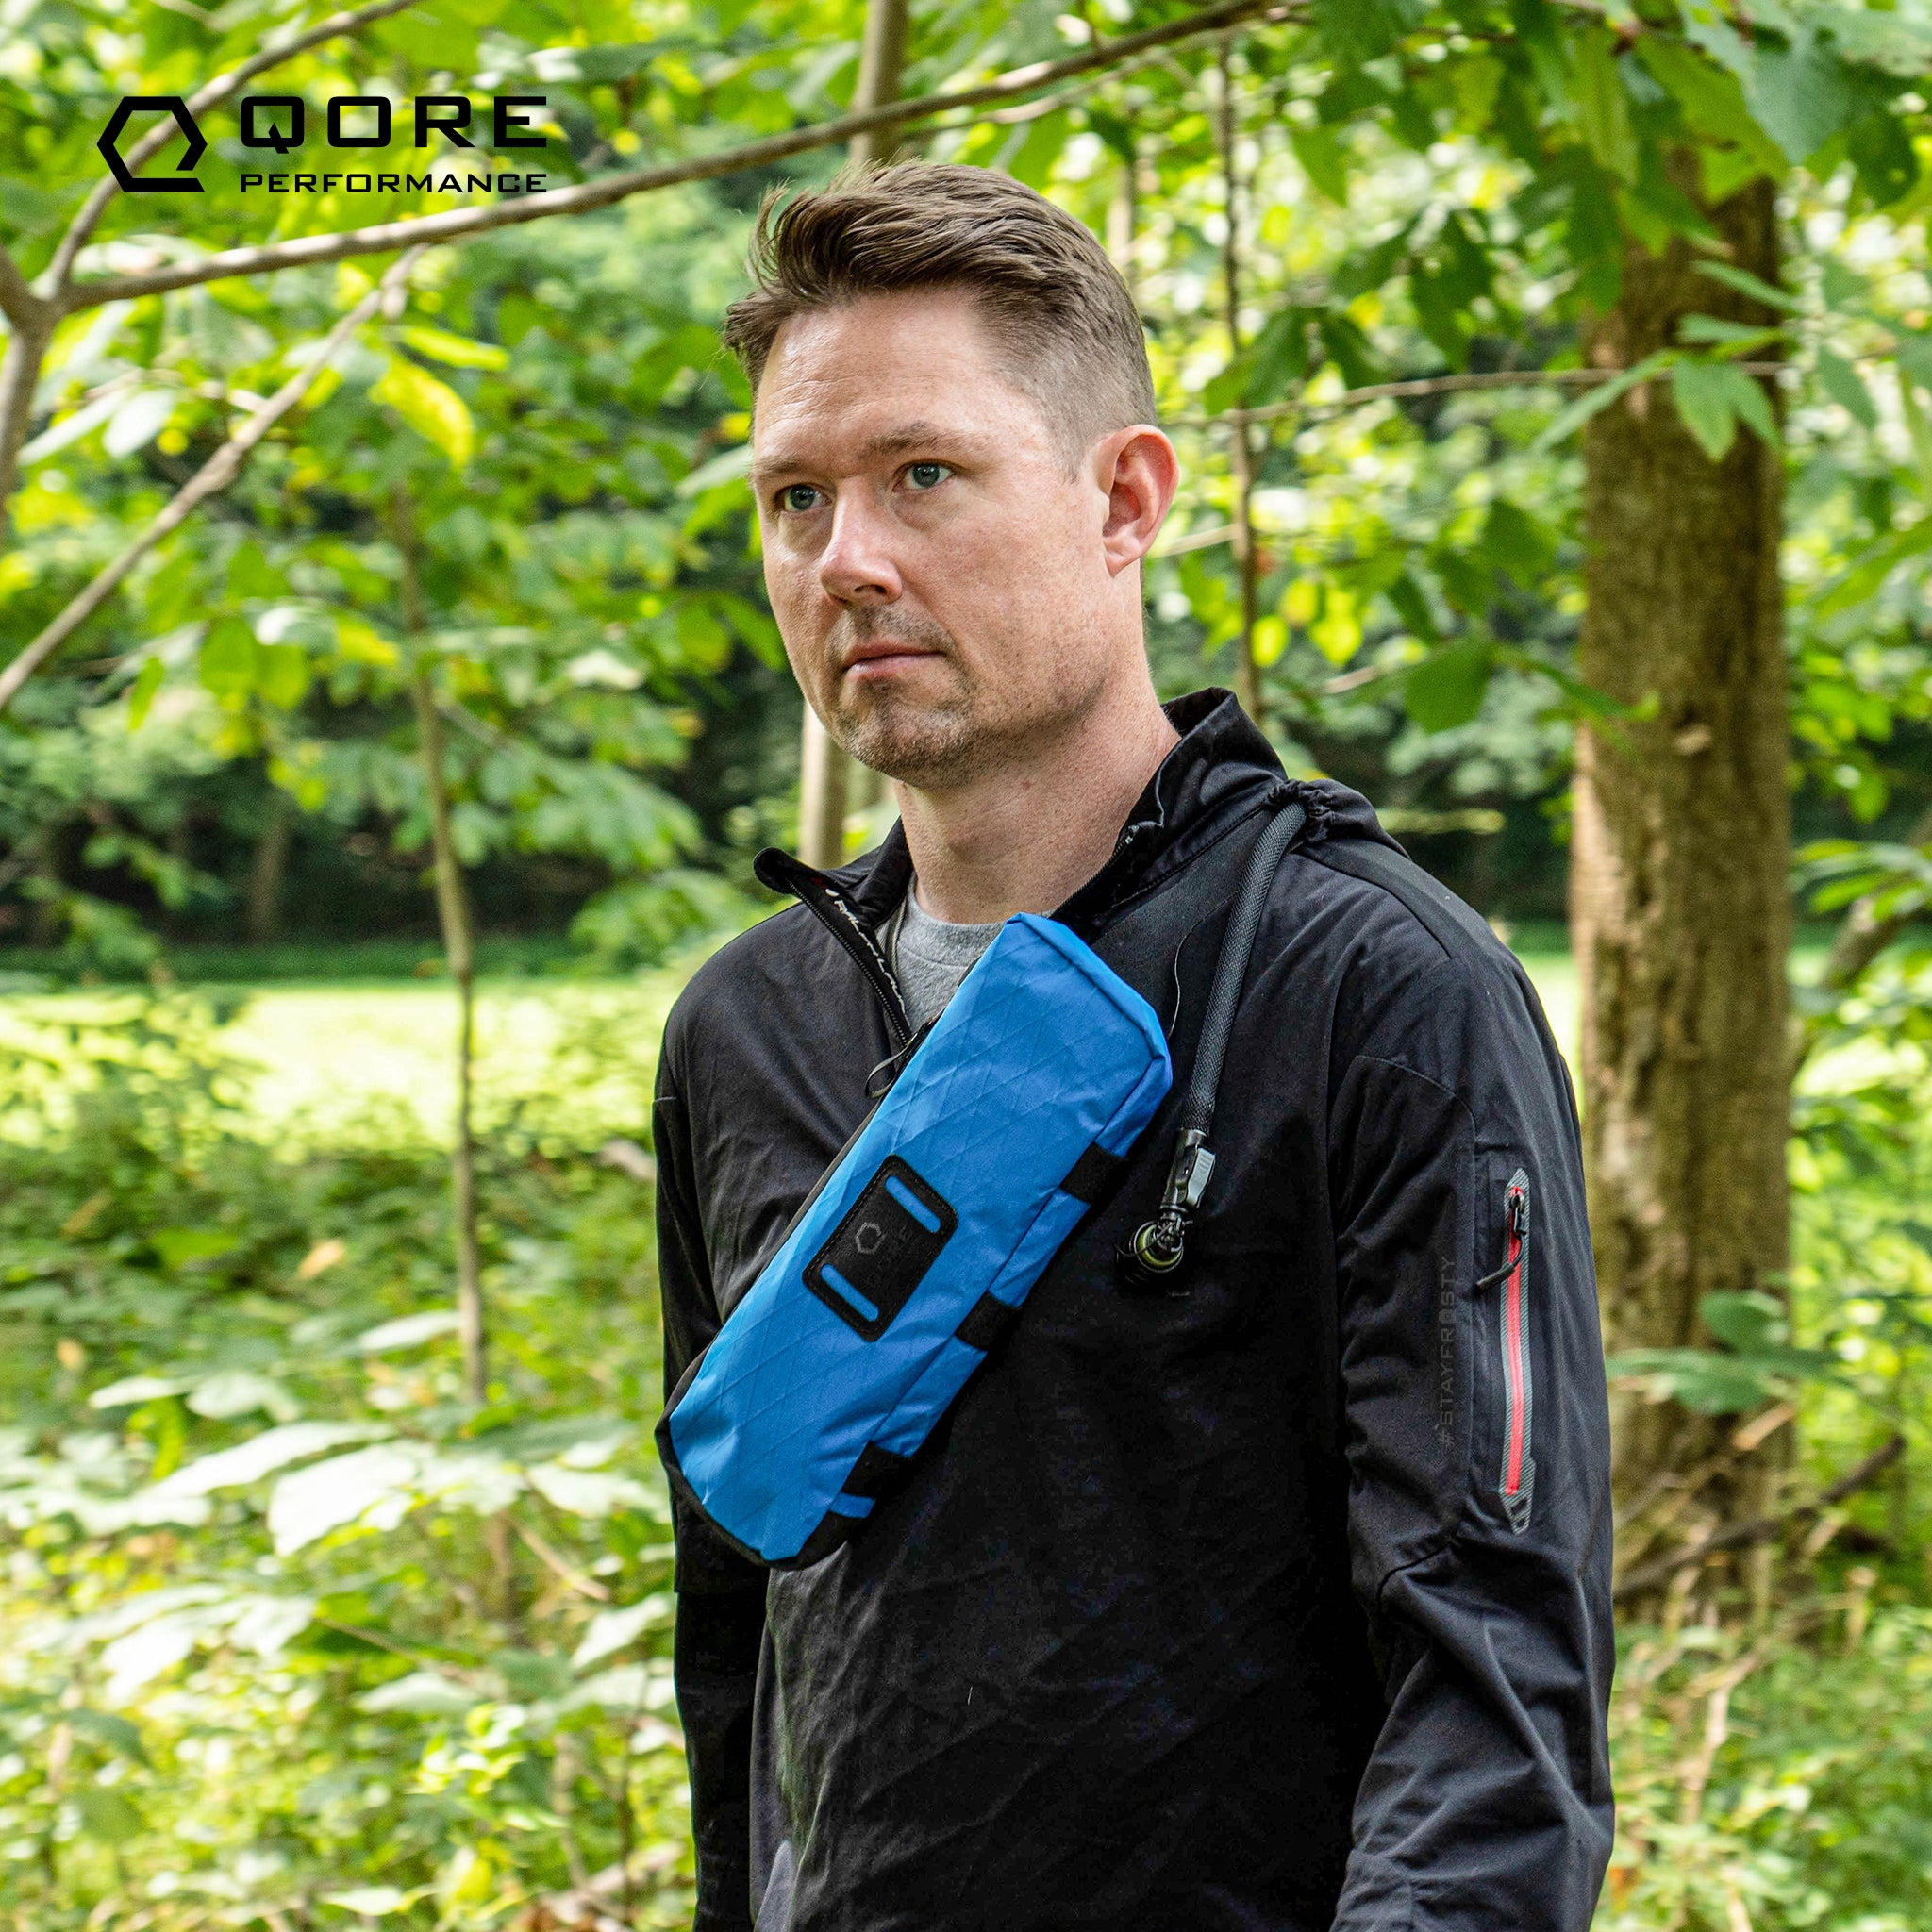 EDC Travel Sling by Qore Performance for walking, hiking, travel, every day carry, bike riding